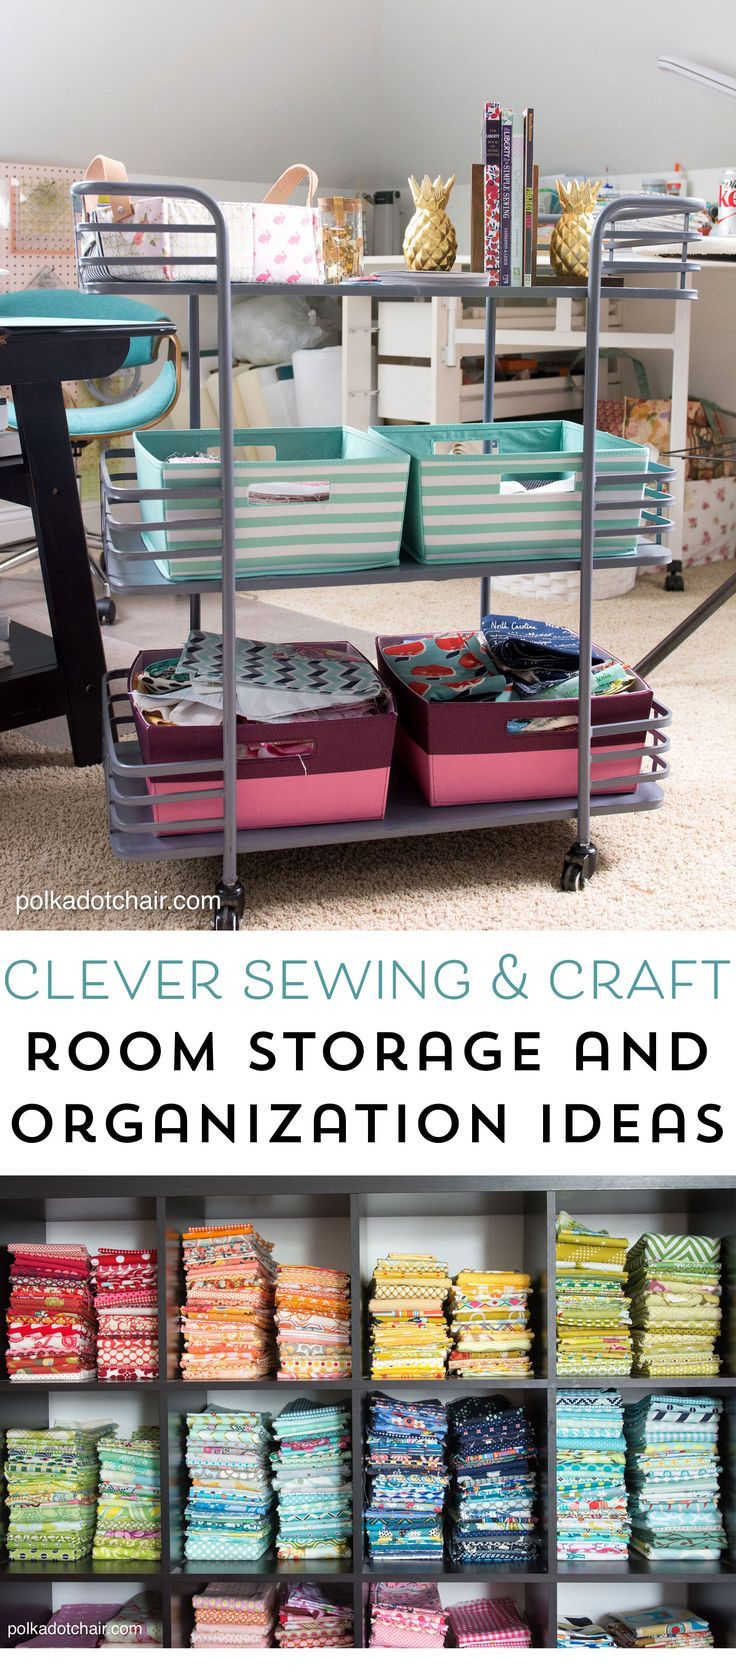 1000 images about ideas a place to create on pinterest for Cool ways to organize your room